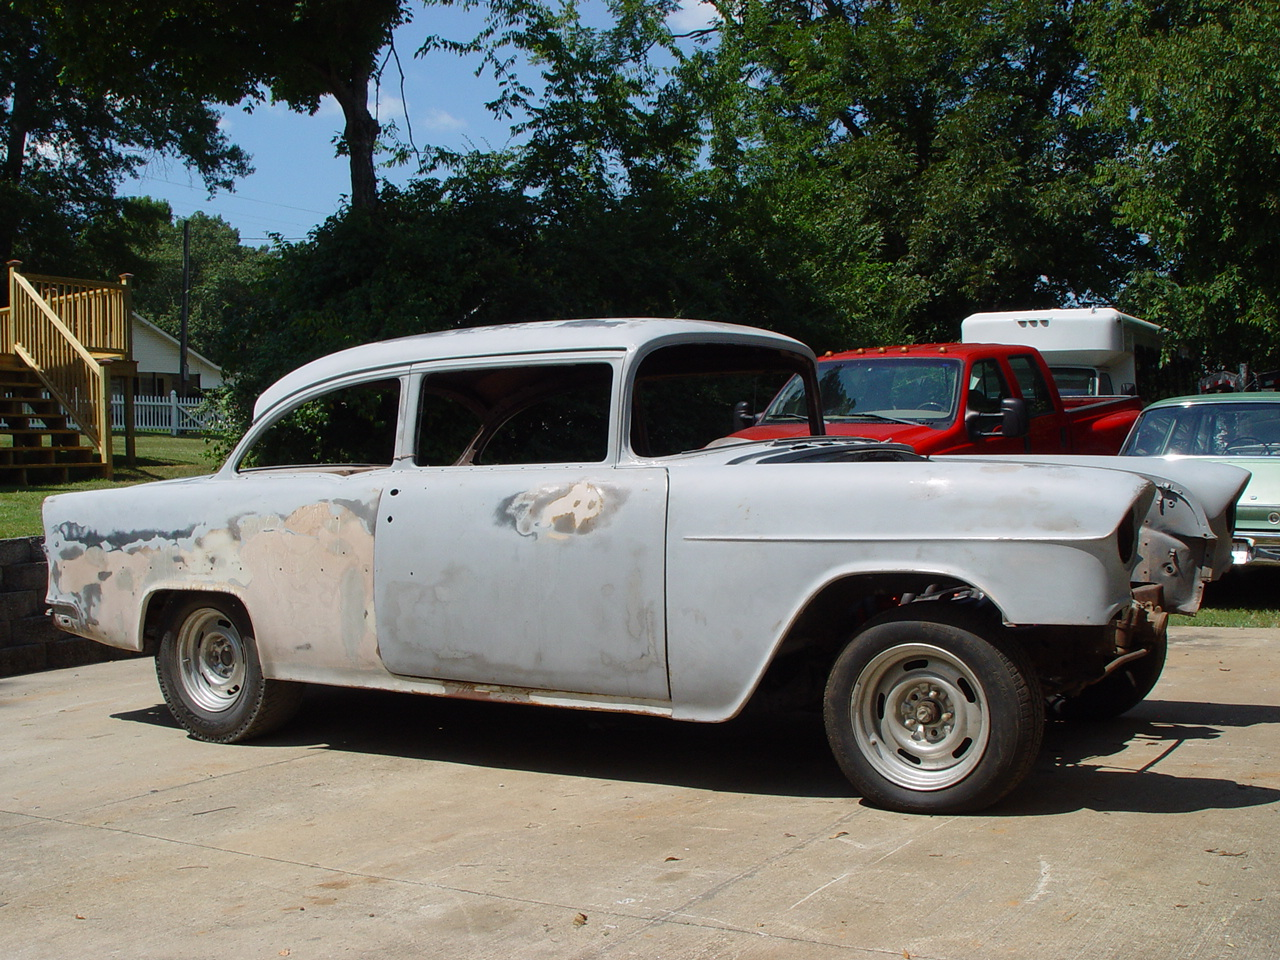 All Chevy 55 chevy for sale : 1955 Chevy 210 2-dr Post | The H.A.M.B.